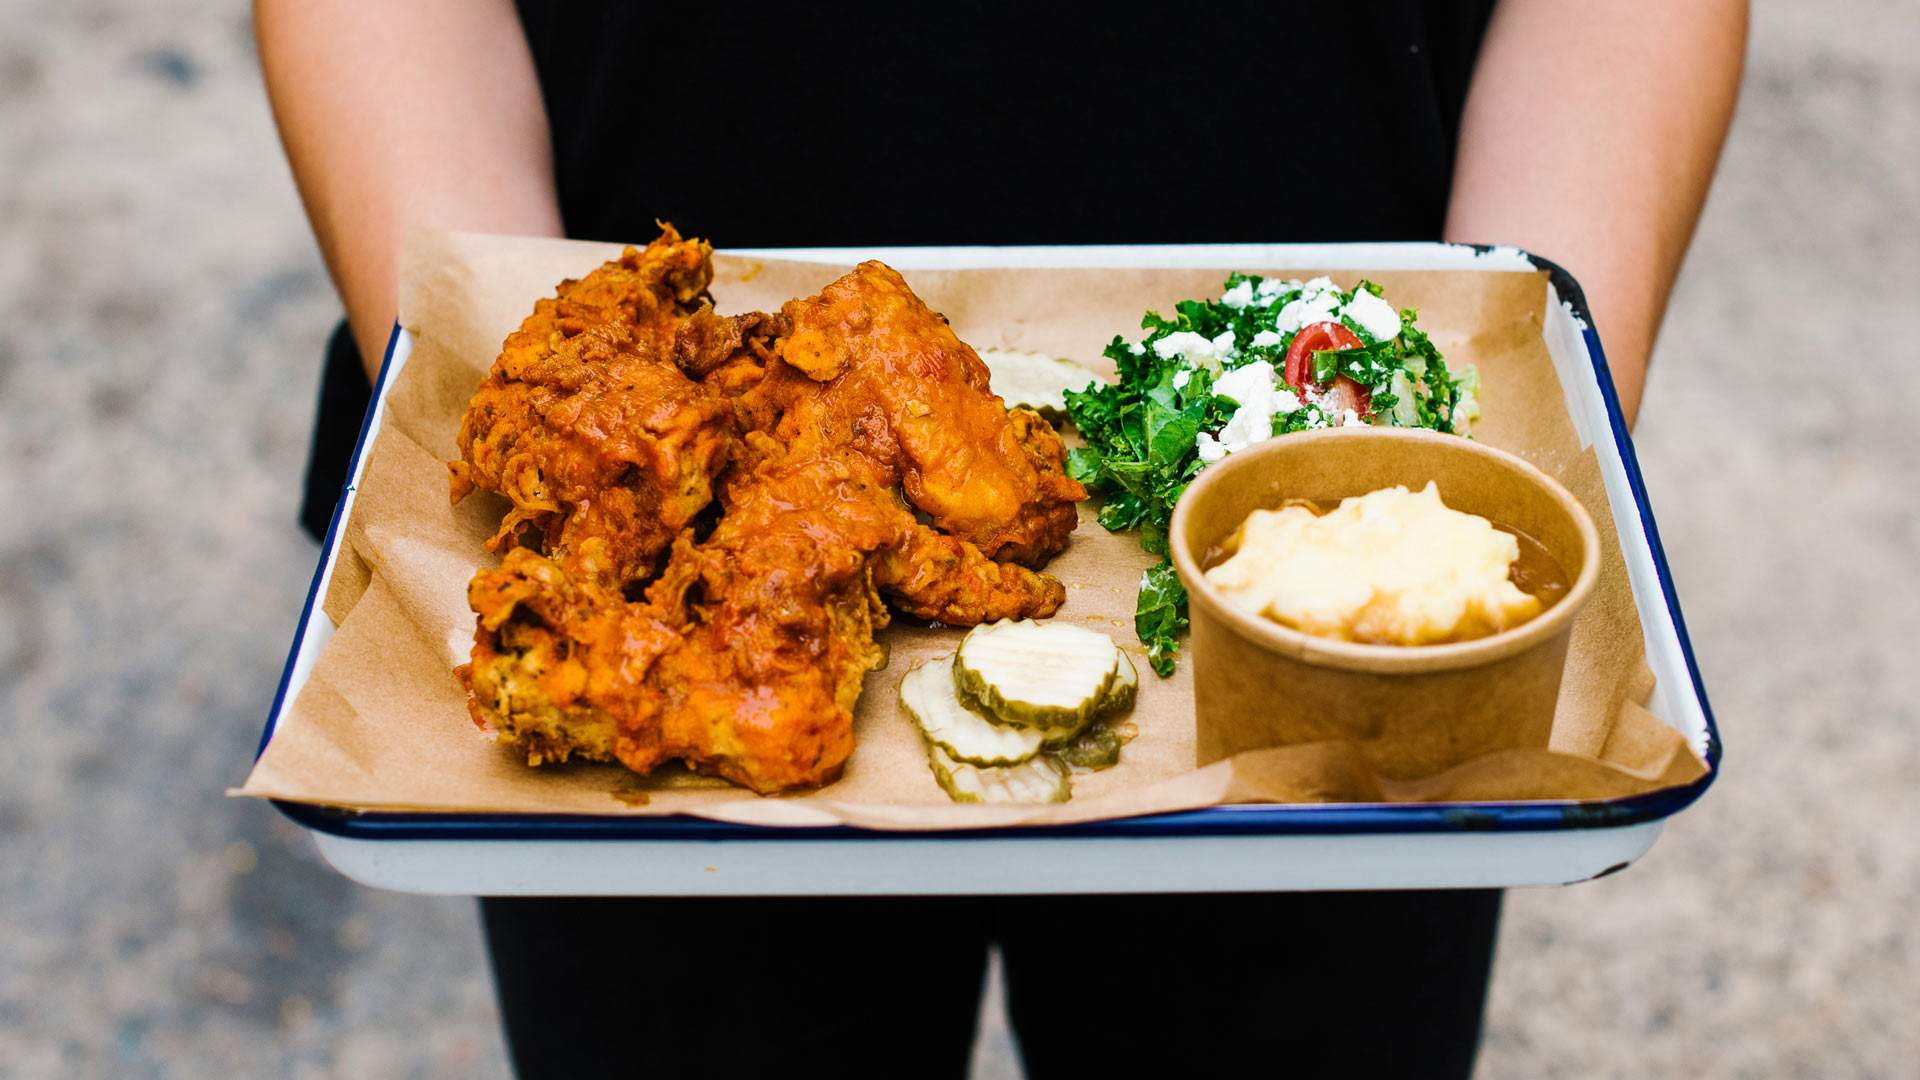 All-You-Can-Eat Fried Chicken